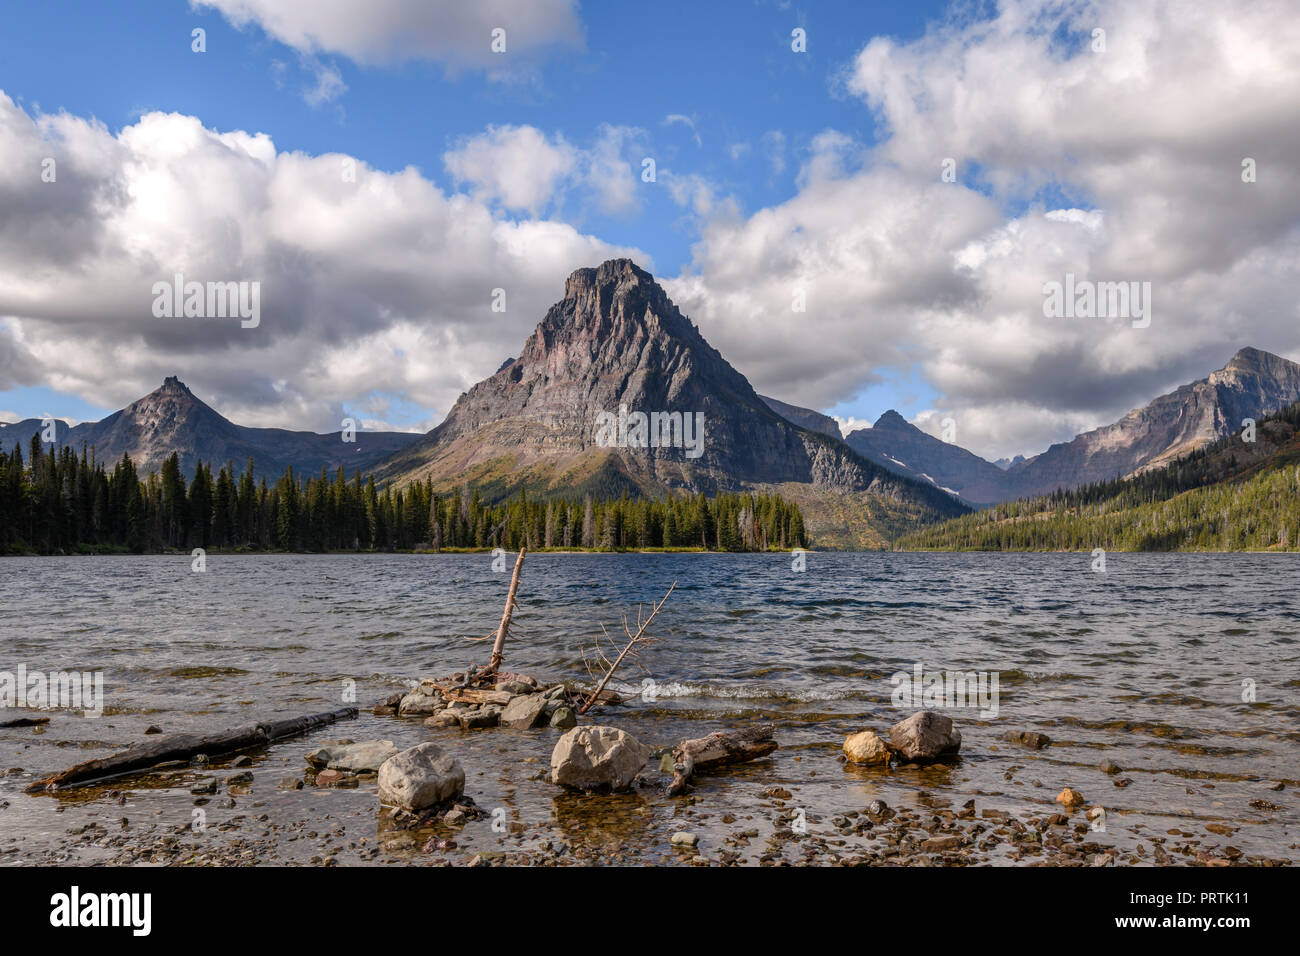 Two Medicine Lake overlooked by Sinopah Mountain, Glacier National Park, Montana - Stock Image